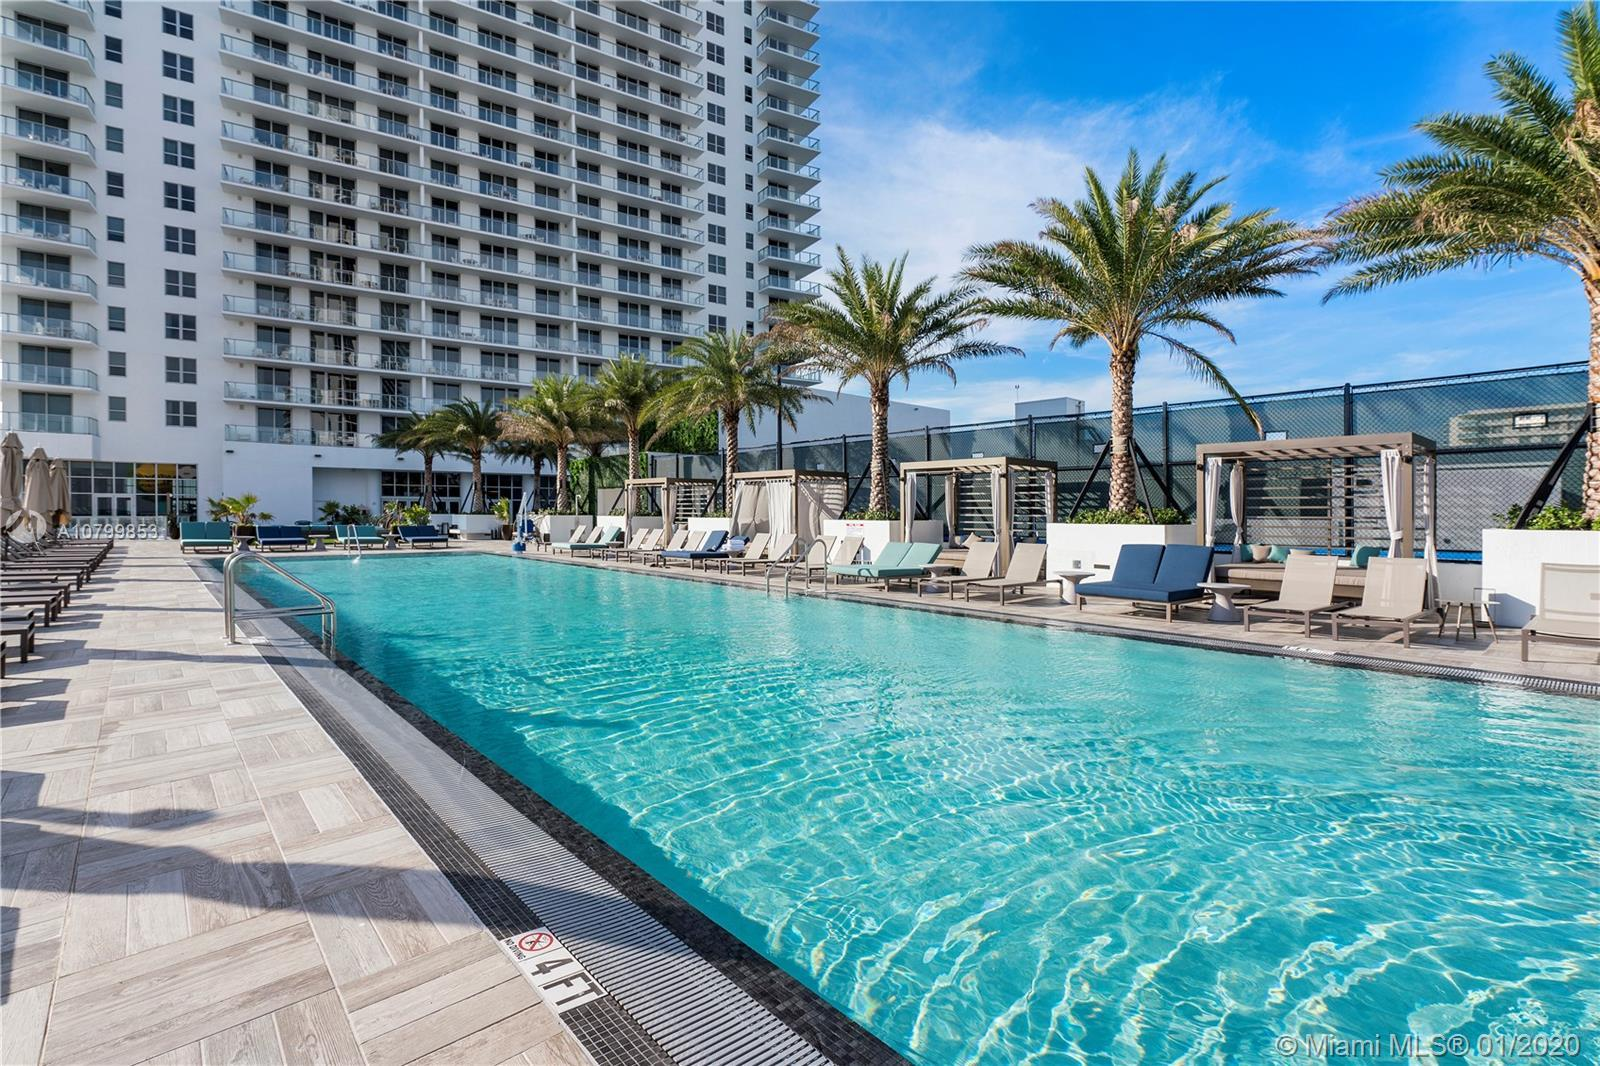 SHORT TERM RENTALS, HOTEL RENTAL PROGRAM OR AIRBNB RENTALS IN PLACE, LUXURIOUS BRAND NEW HYDE BEACH